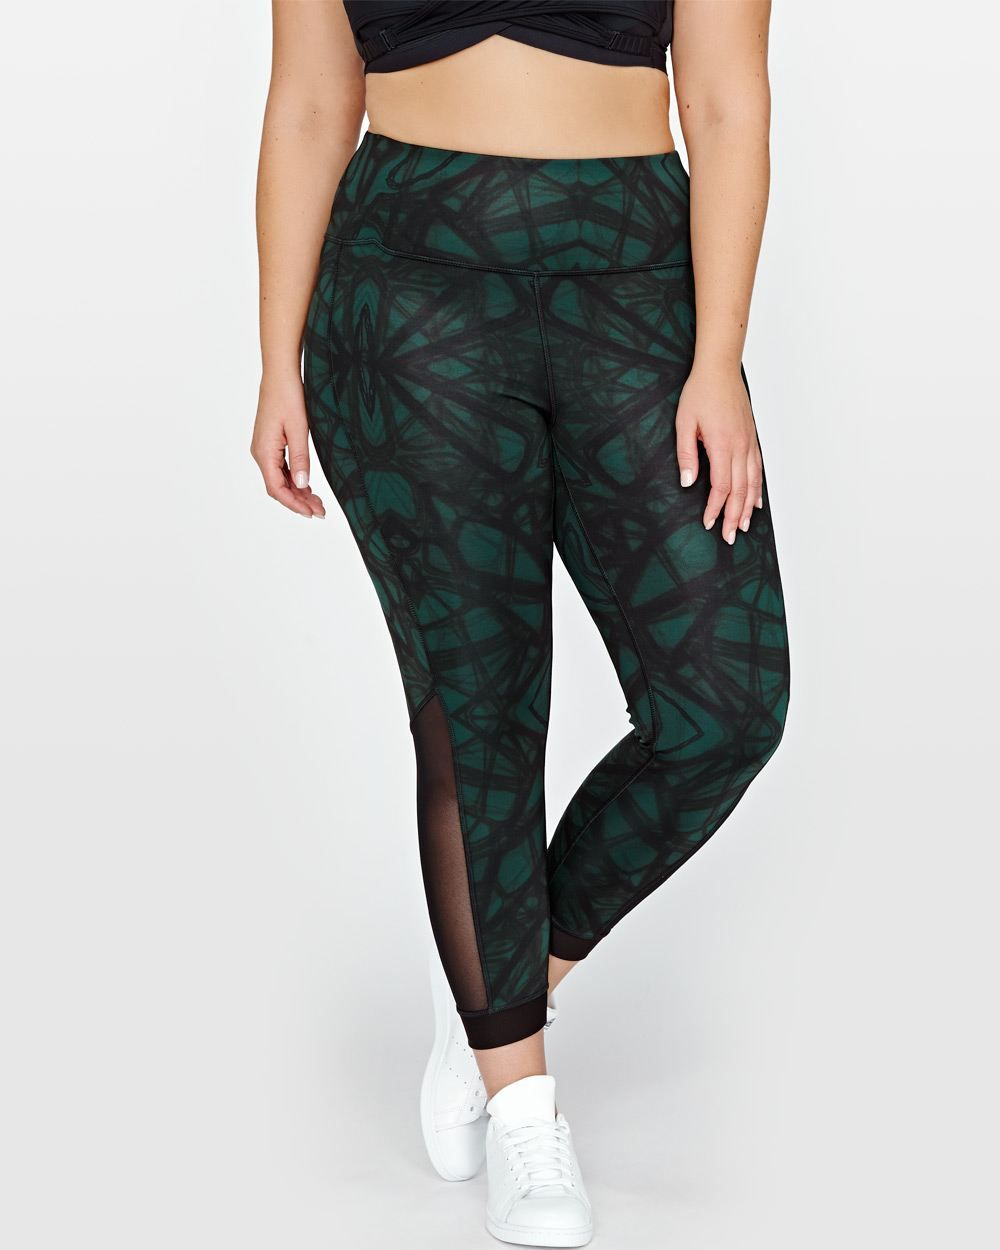 9182ccfea6f89 Shop online for Nola Reversible Printed Legging. Find Active bottoms,  Activewear, Clothing and more at Additionelle